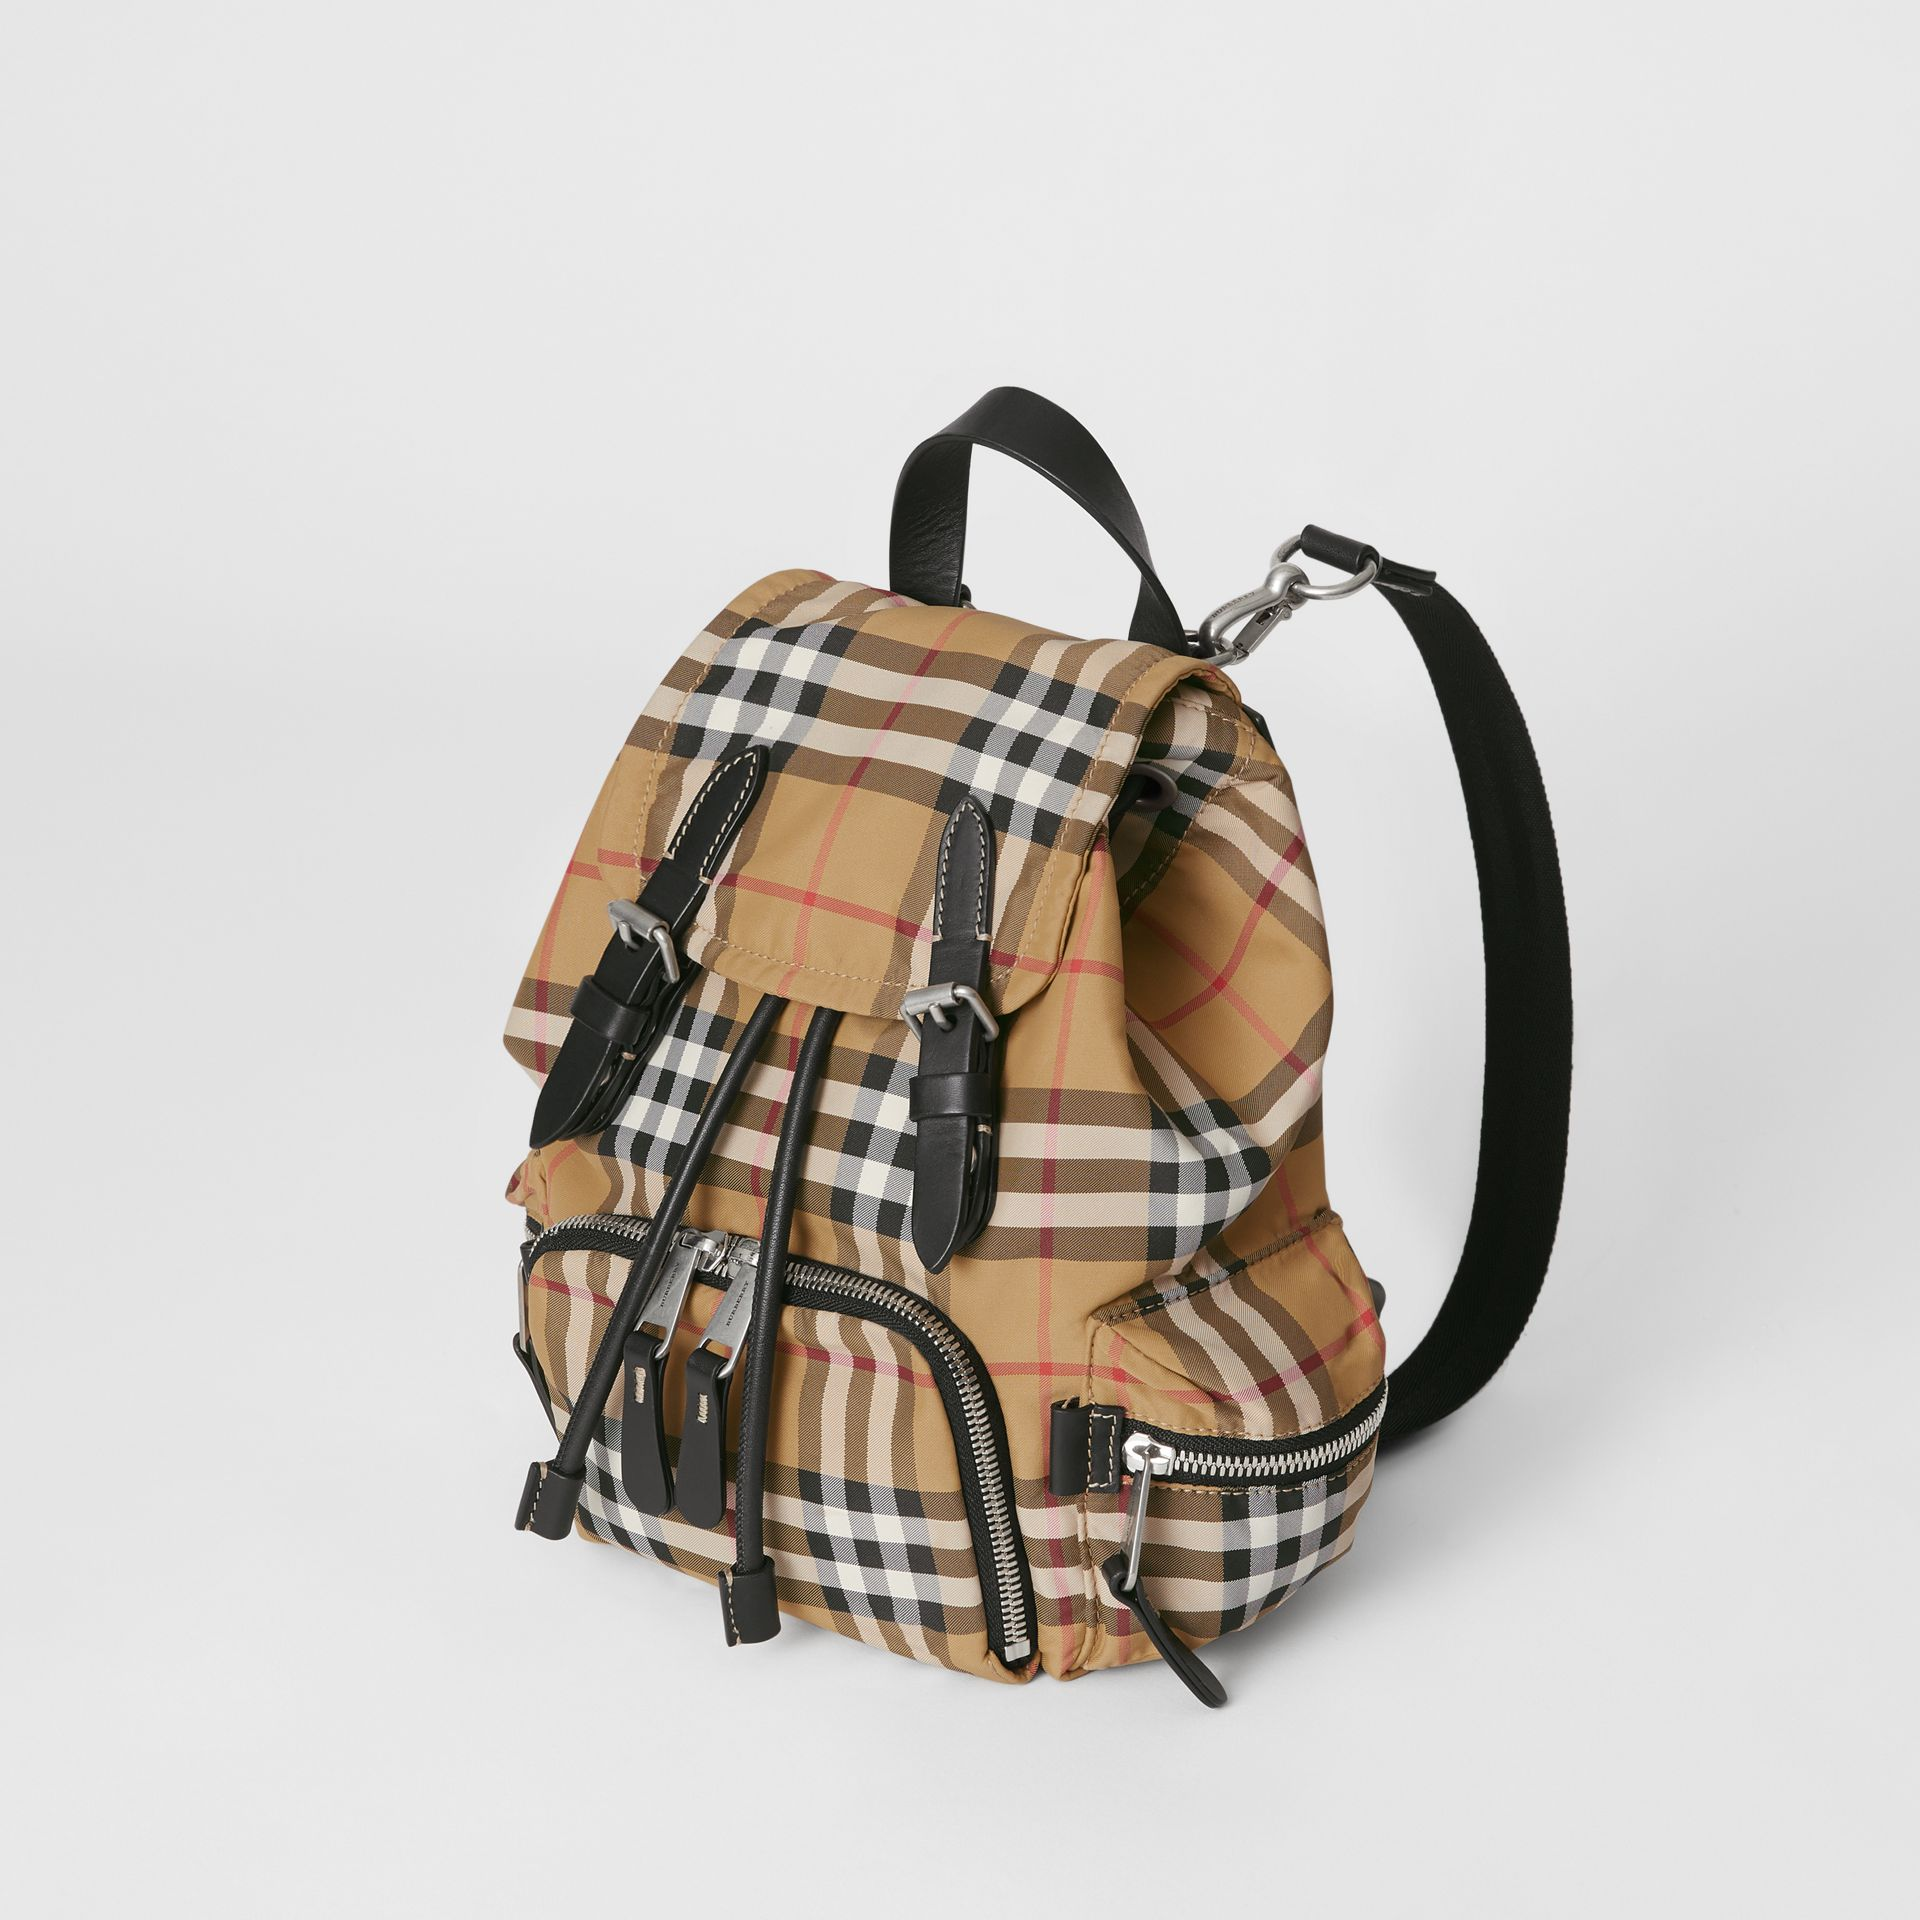 Petit sac The Rucksack à bandoulière avec motif Vintage check (Jaune Antique) - Femme | Burberry - photo de la galerie 3